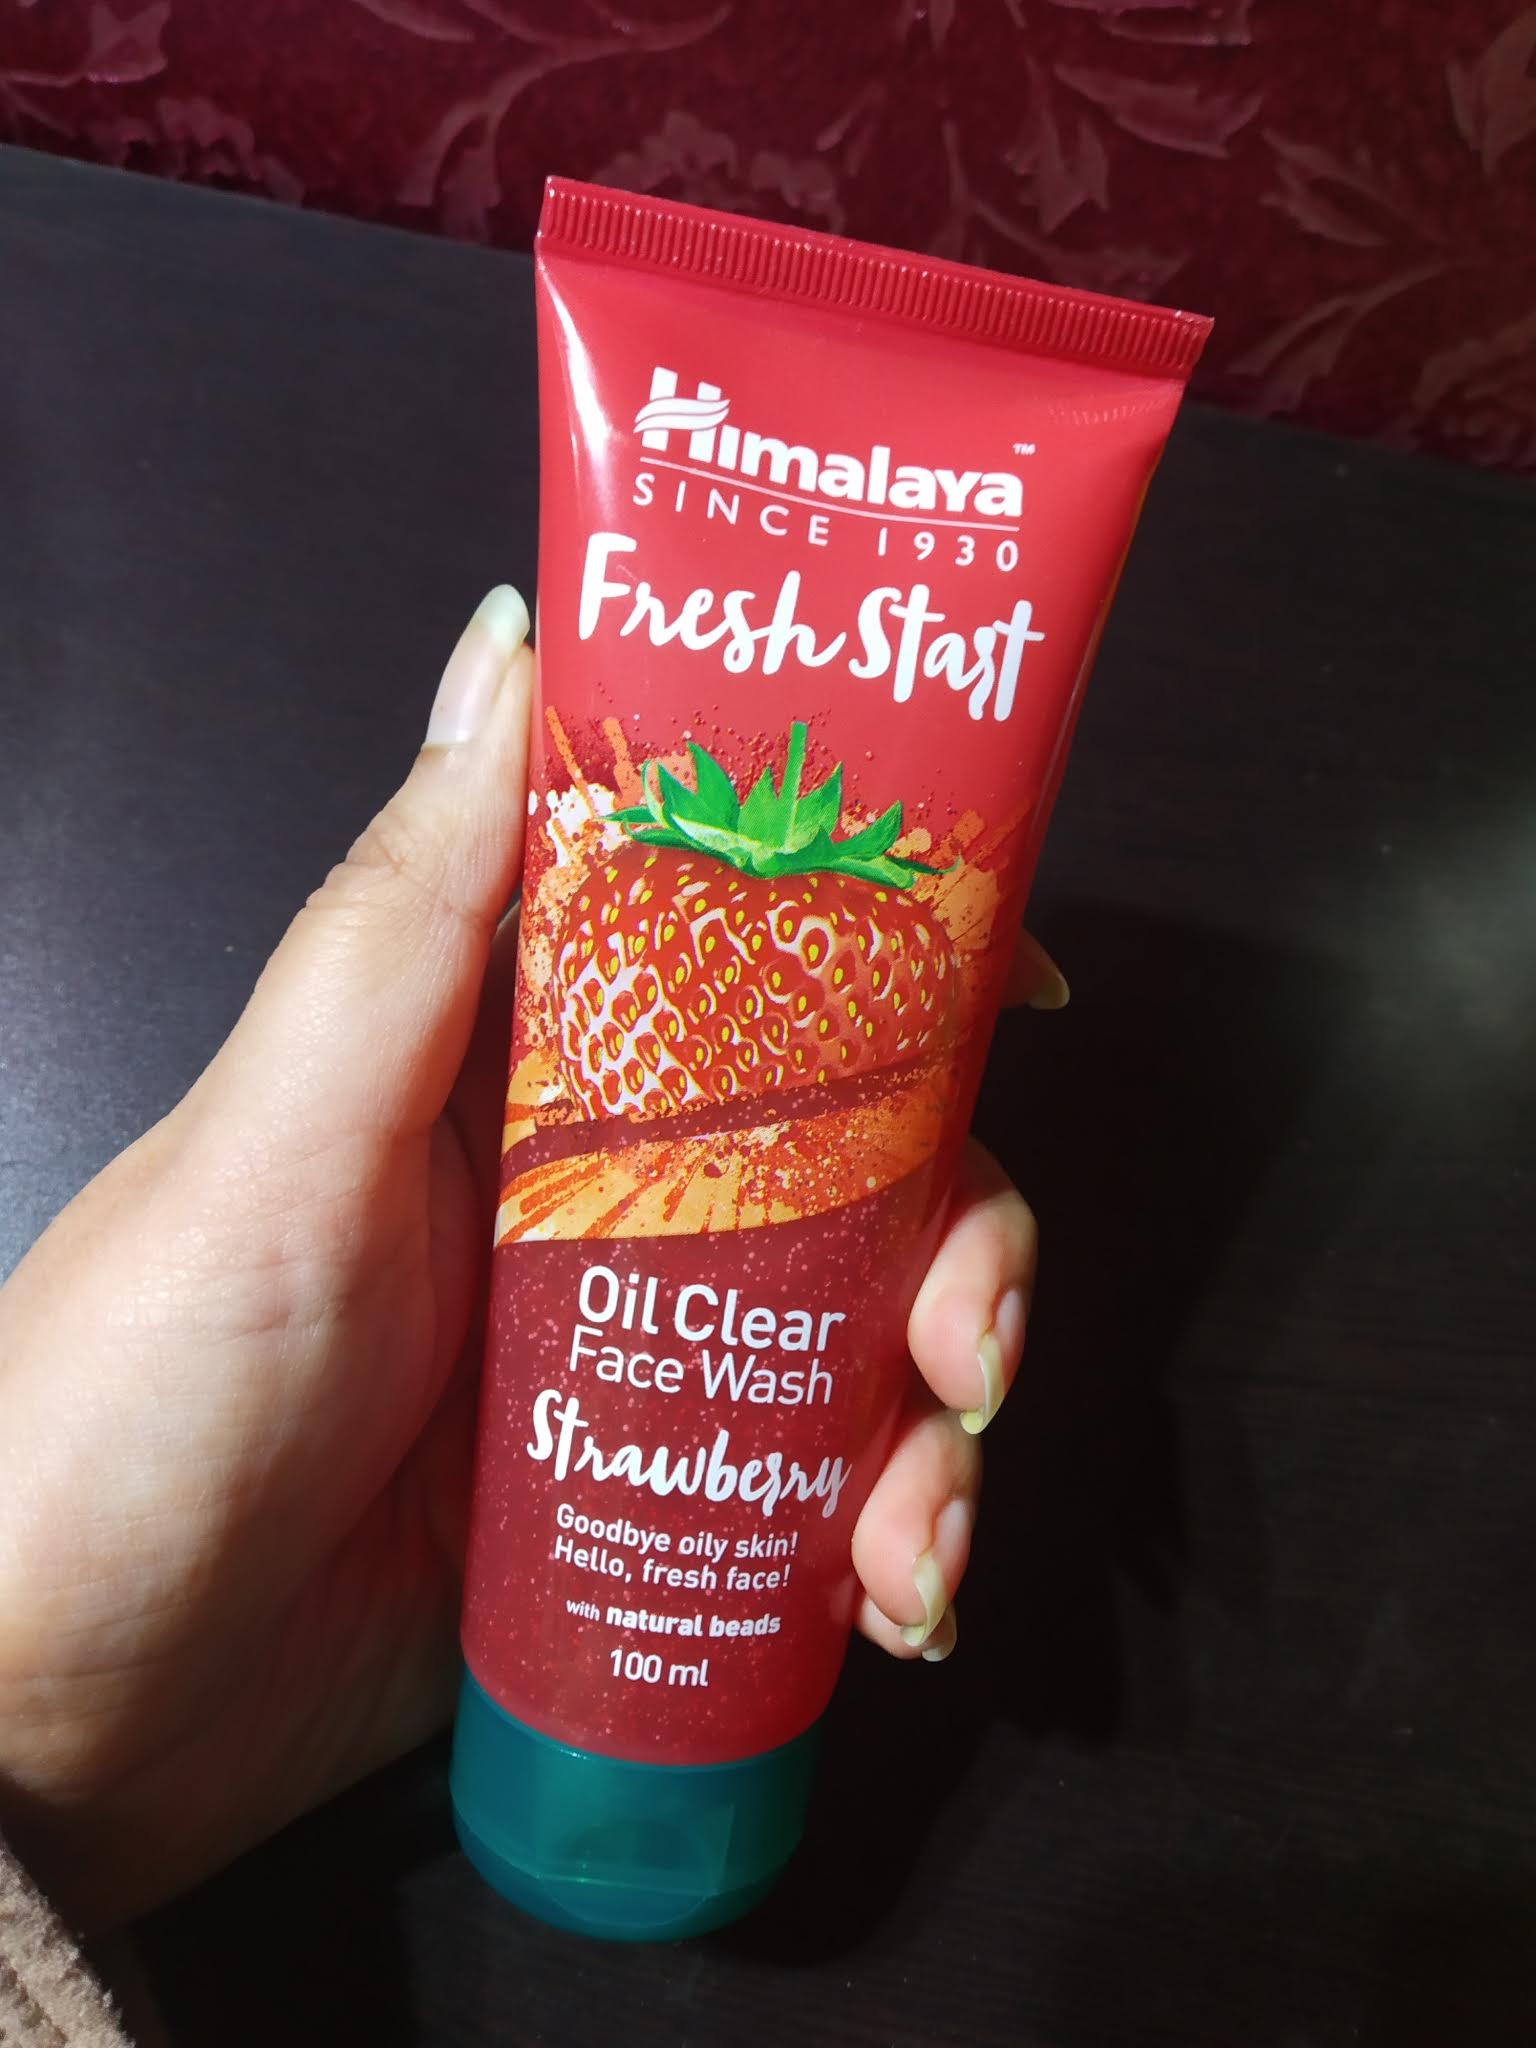 Himalaya Herbals Fresh Start Oil Clear Strawberry Face Wash-What a fresh start!-By nishthask